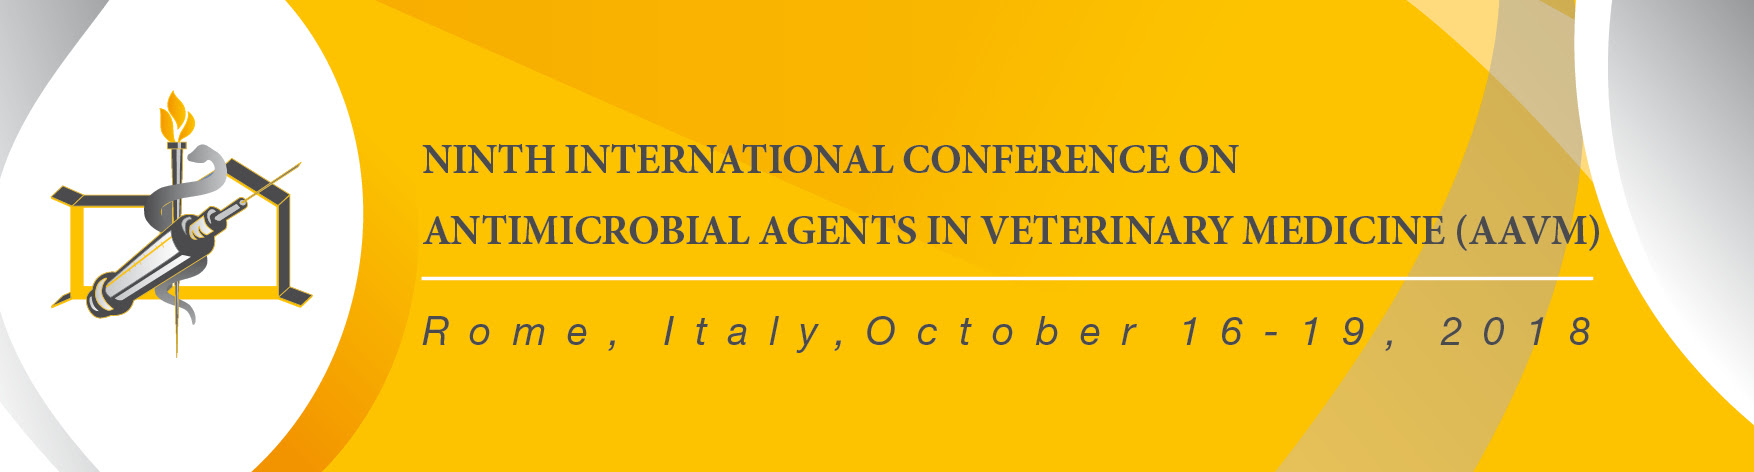 We Are Currently Preparing The Ninth International Conference On Antimicrobial Agents In Veterinary Medicine AAVM To Be Held Rome Italy